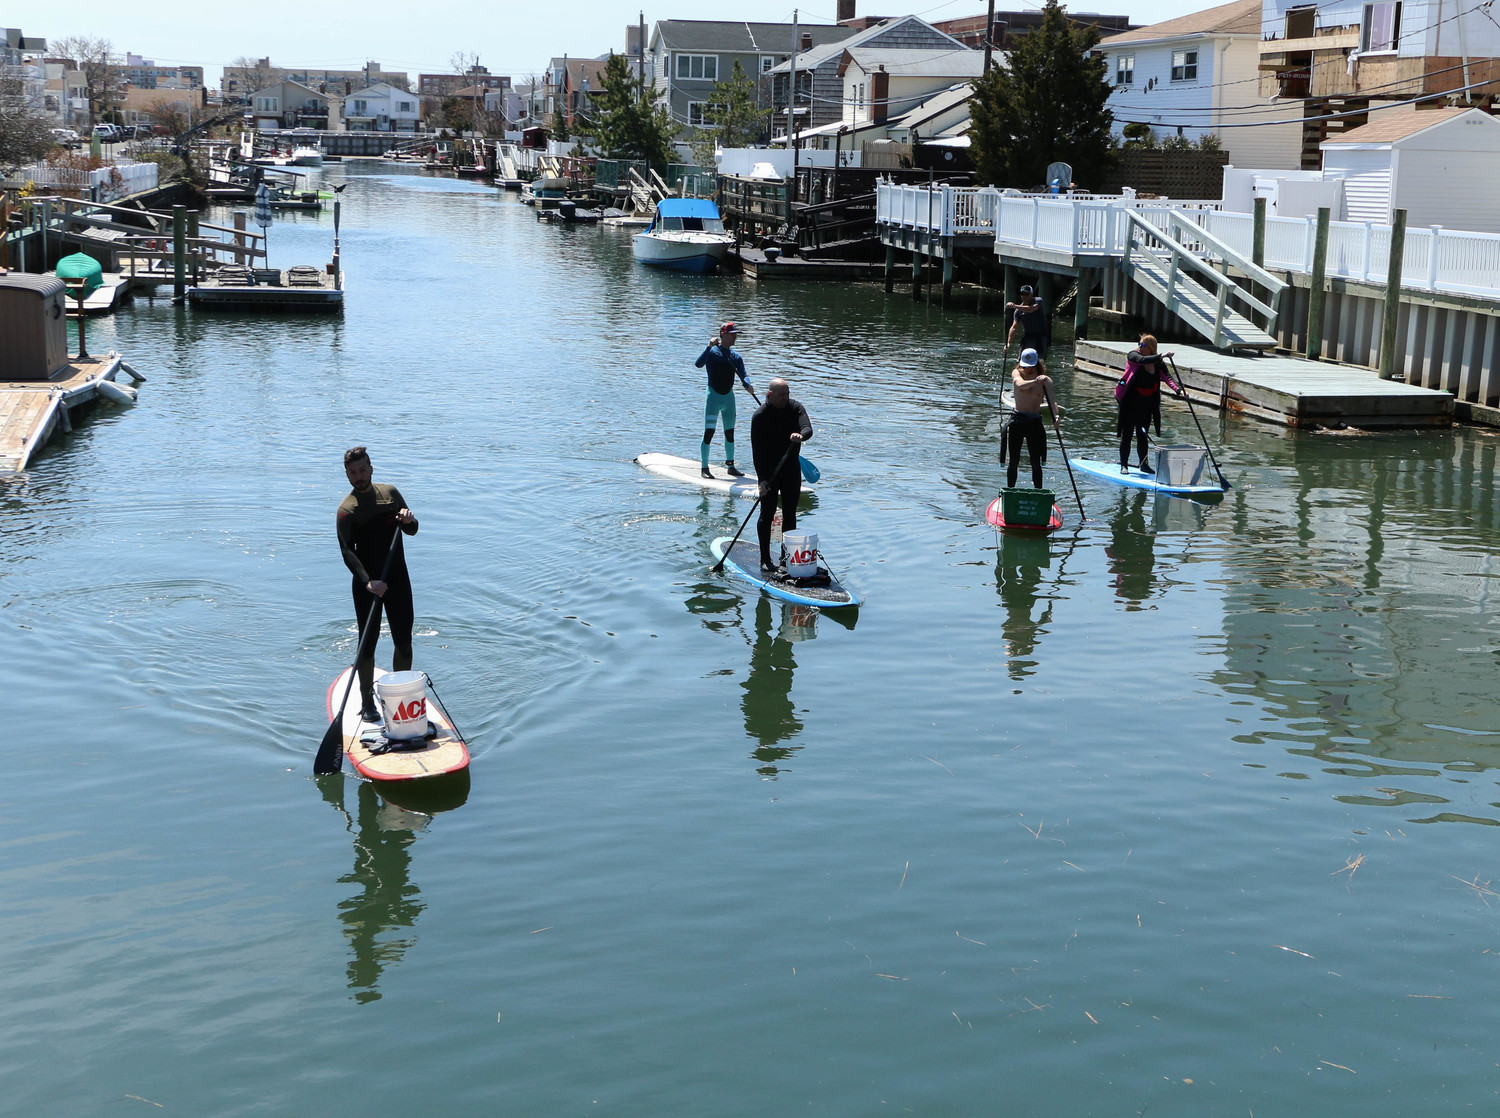 Volunteers stood on stand up paddleboards as they collected debris in buckets.